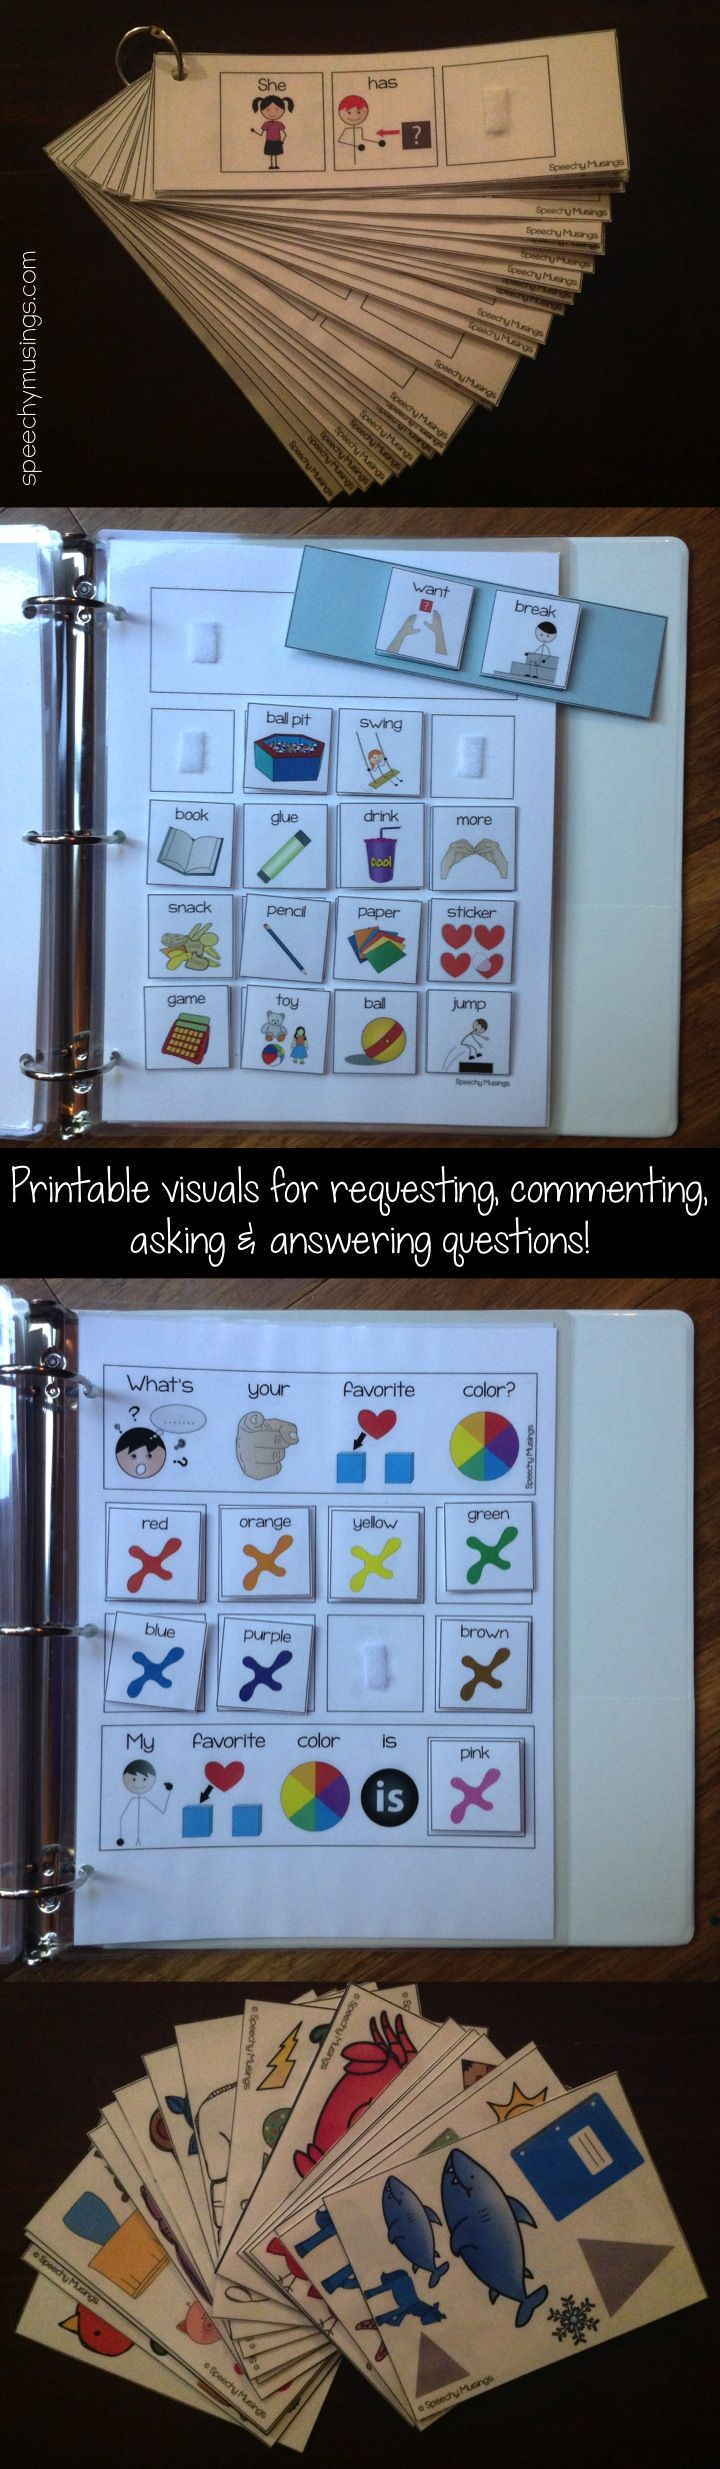 Speechy Musings: Save yourself some time!! Check out my Interactive Visuals for Commenting, Asking, and Answering Questions!! Pinned by NJD